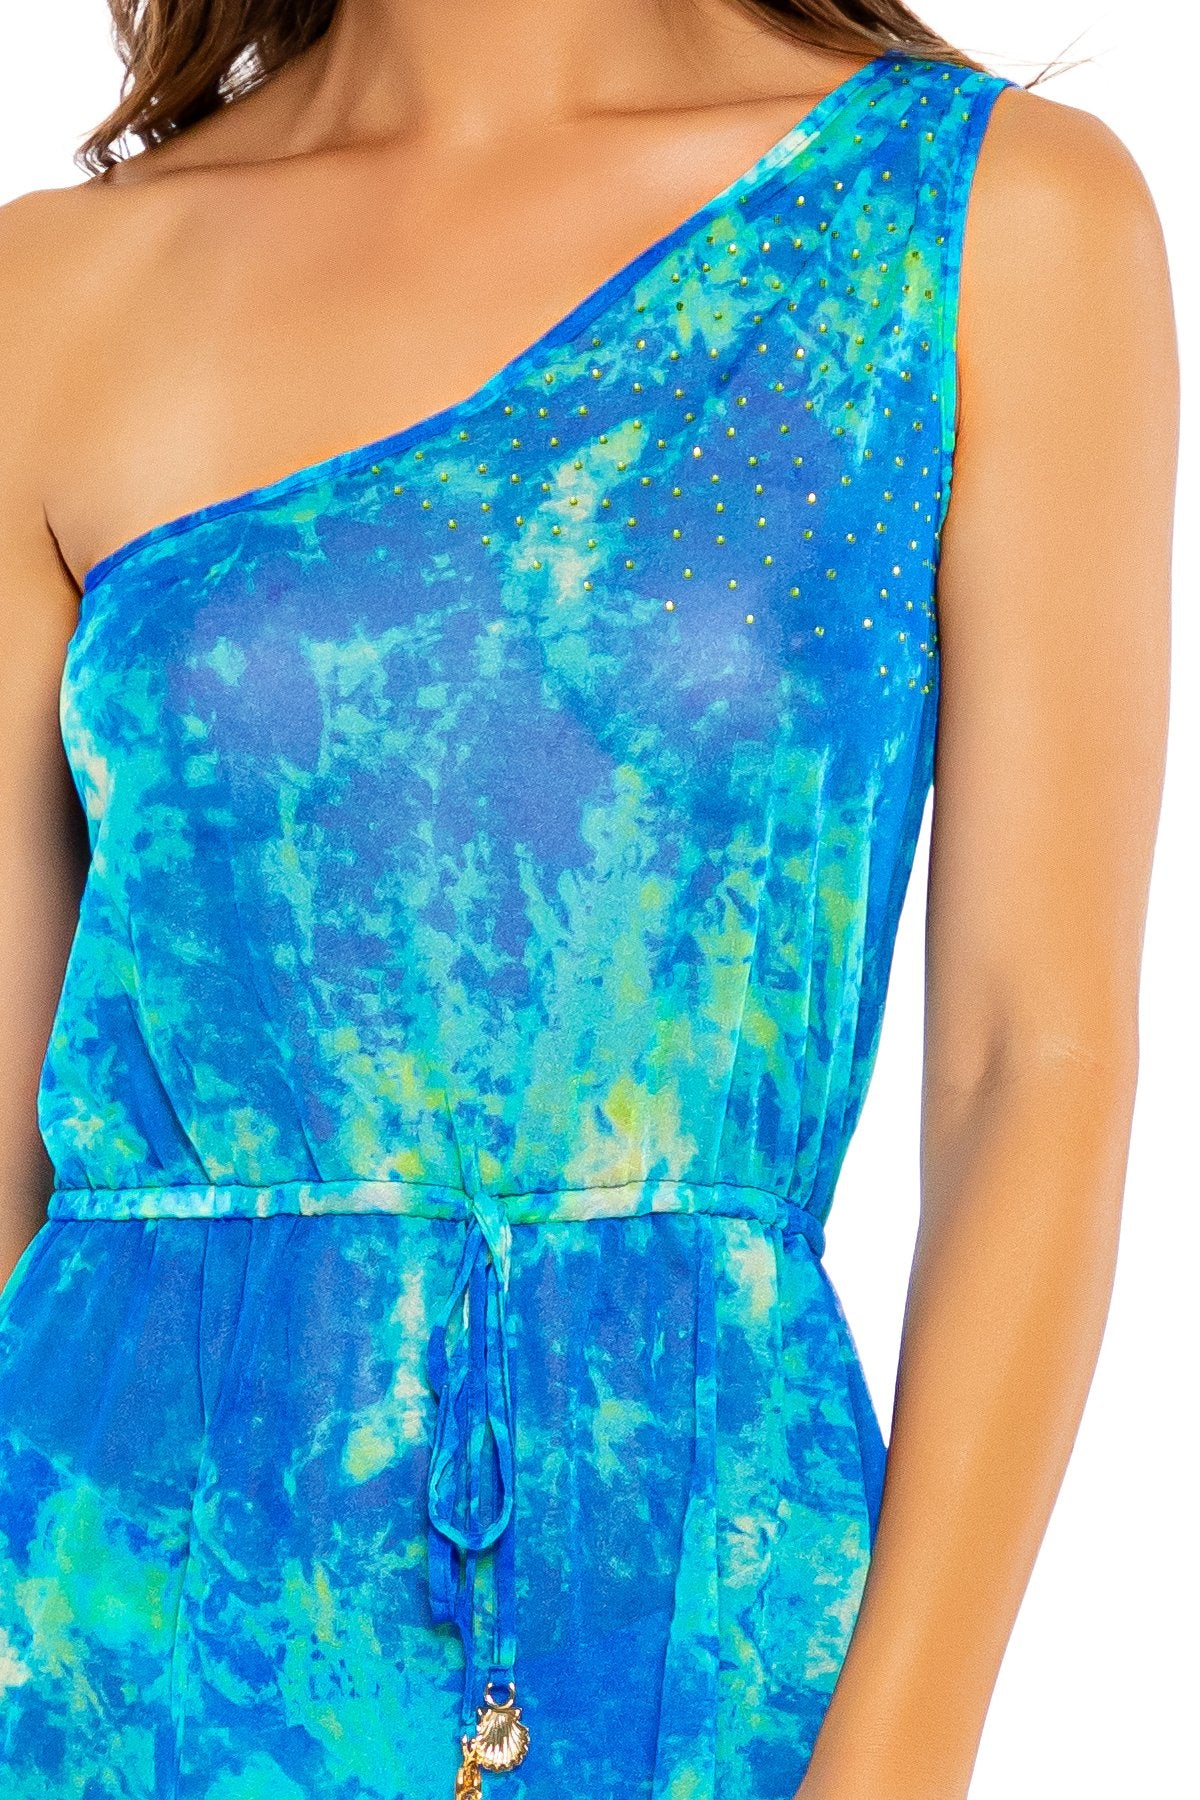 ANTOJITOS DEL MAR - One Shoulder Crystallized Short Dress • Multicolor